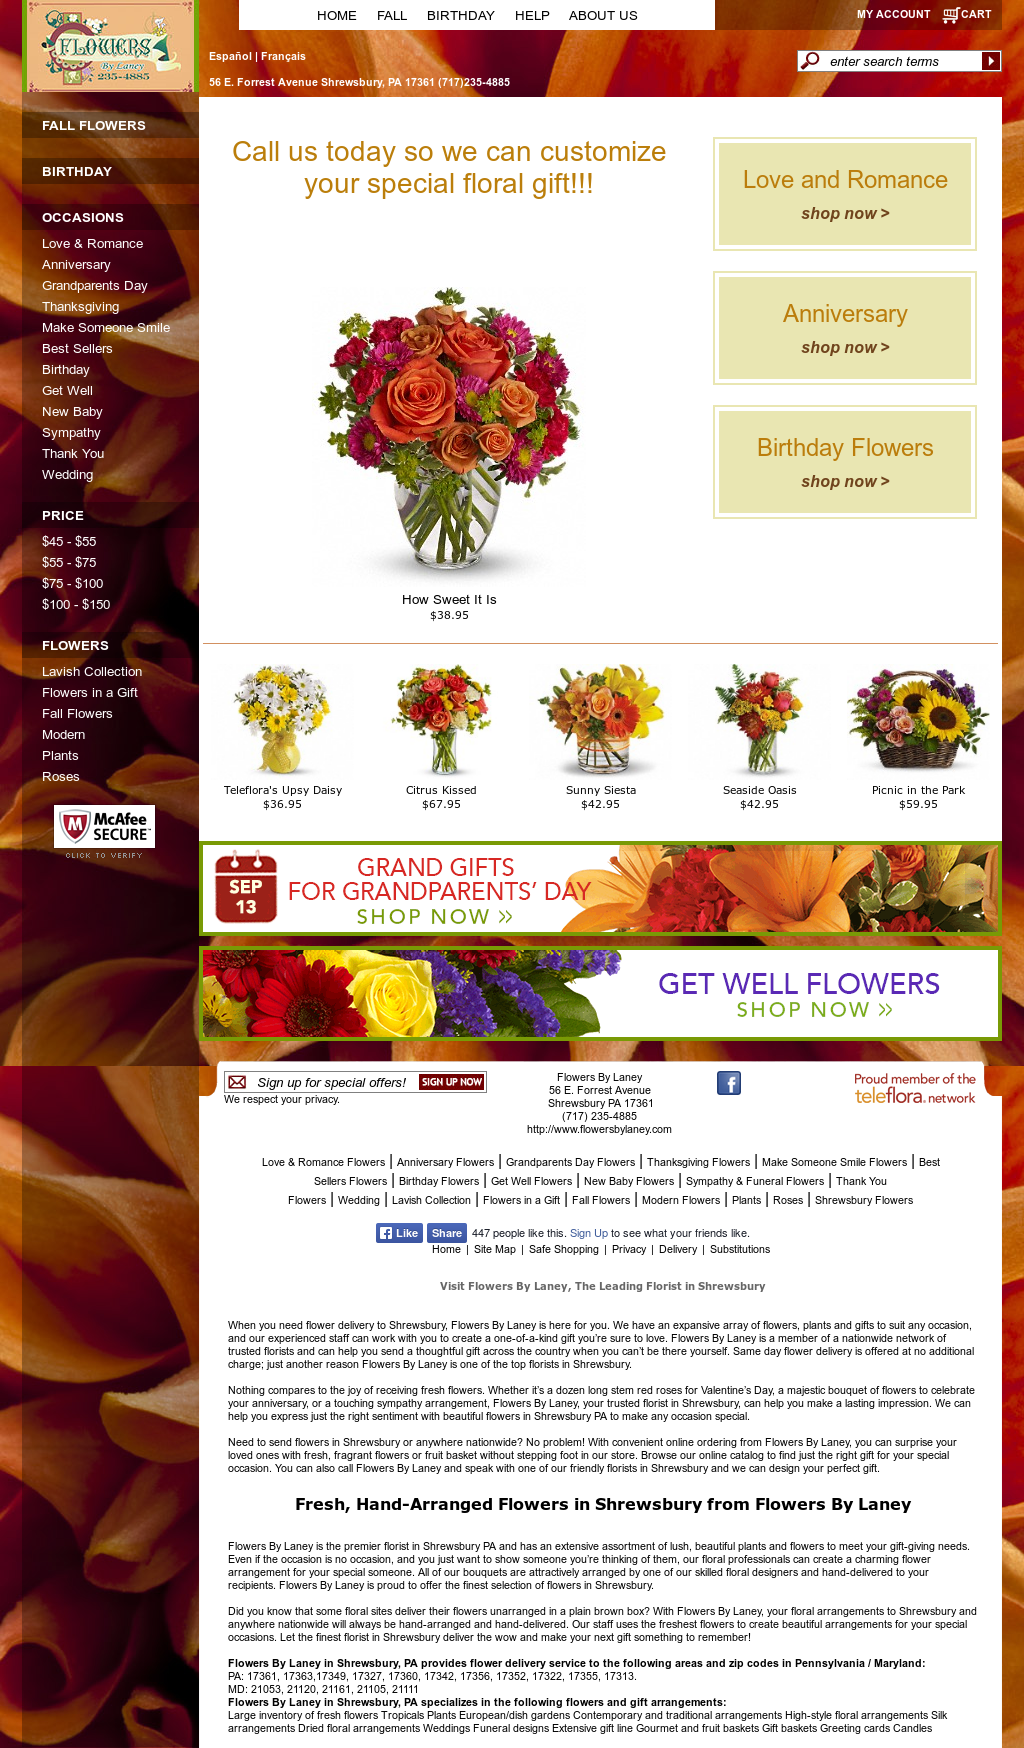 Flowers By Laney Competitors, Revenue and Employees - Owler Company Profile